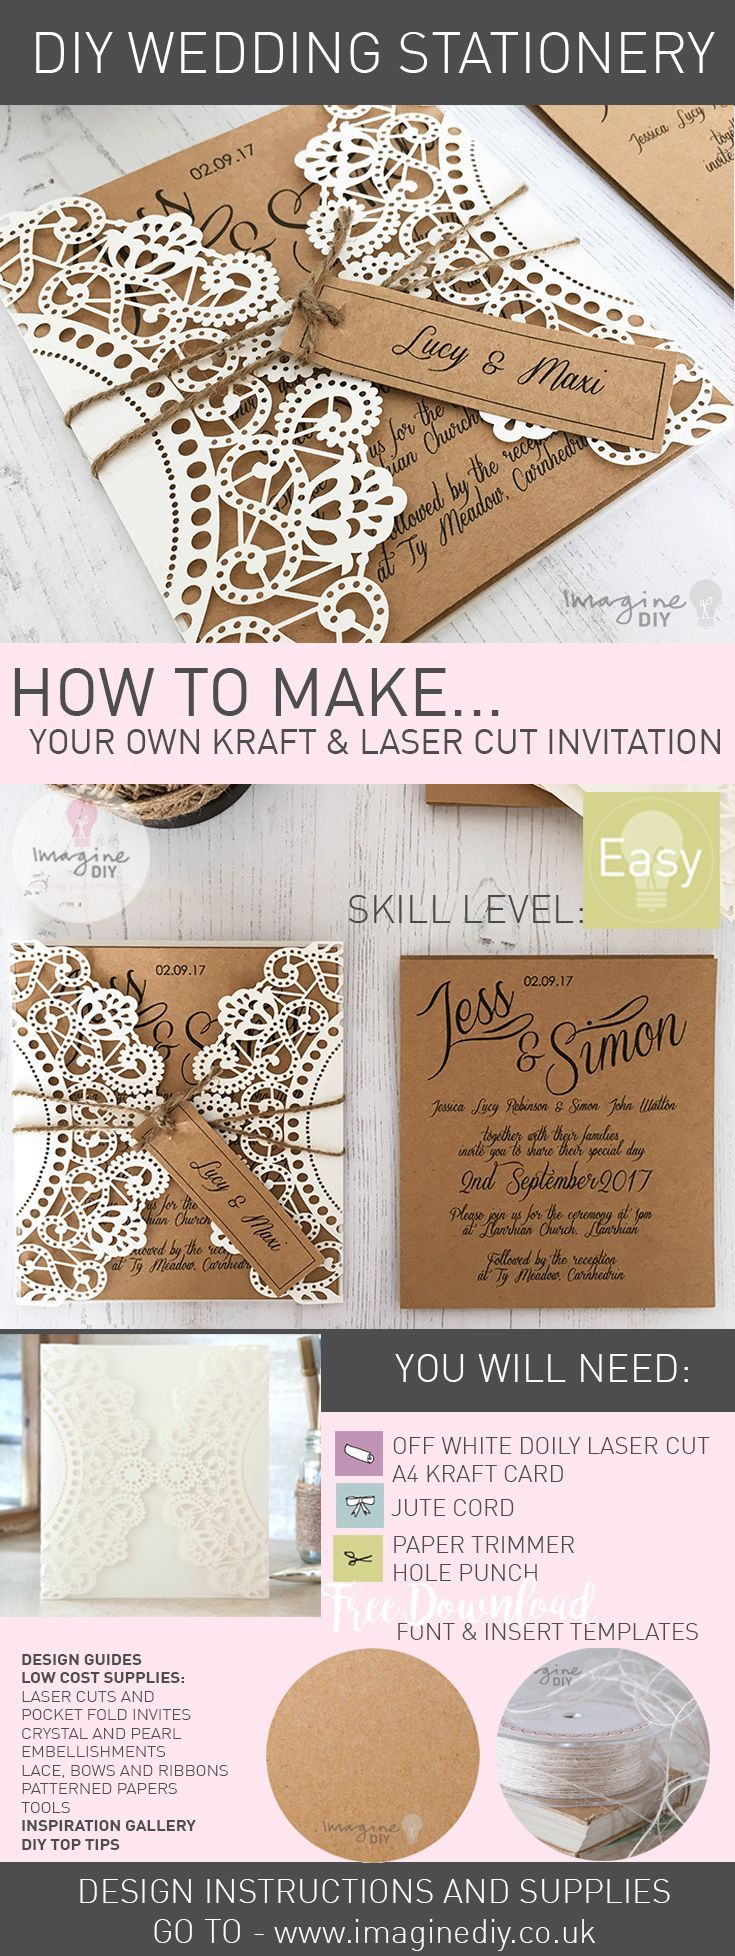 How to make your own diy wedding stationery wedding stationery